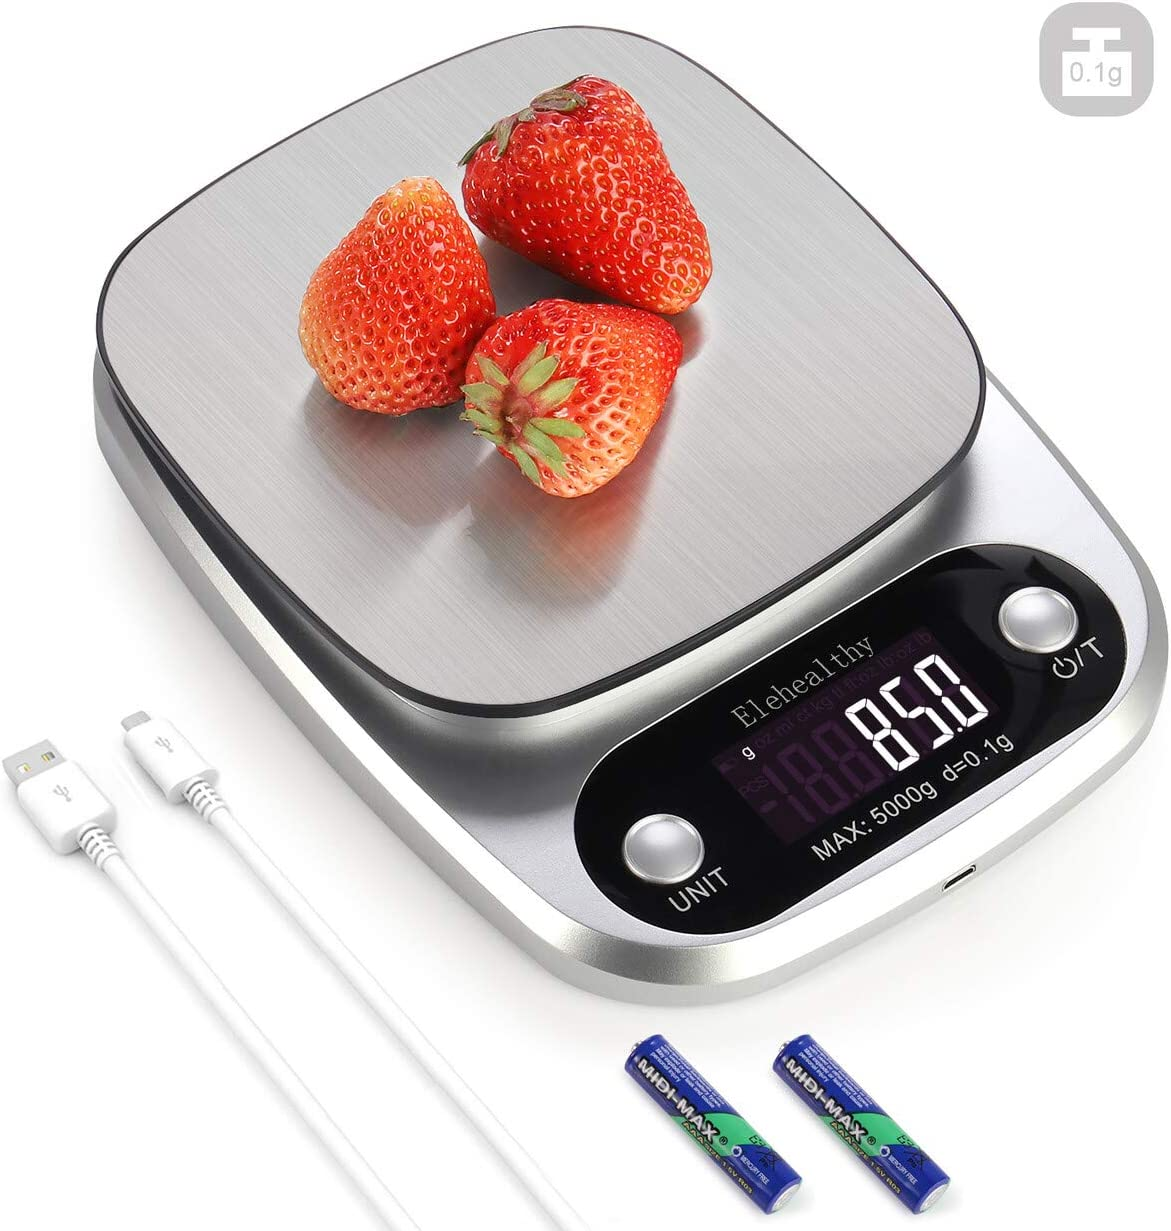 0.1g High Precision Kitchen Scale, Rechargable Food Scale Digital 5KG/11lbs, 9 Measurement Units, Brushed Stainless Steel, 2AAA Batteries included (5KG/0.1g -Silver)